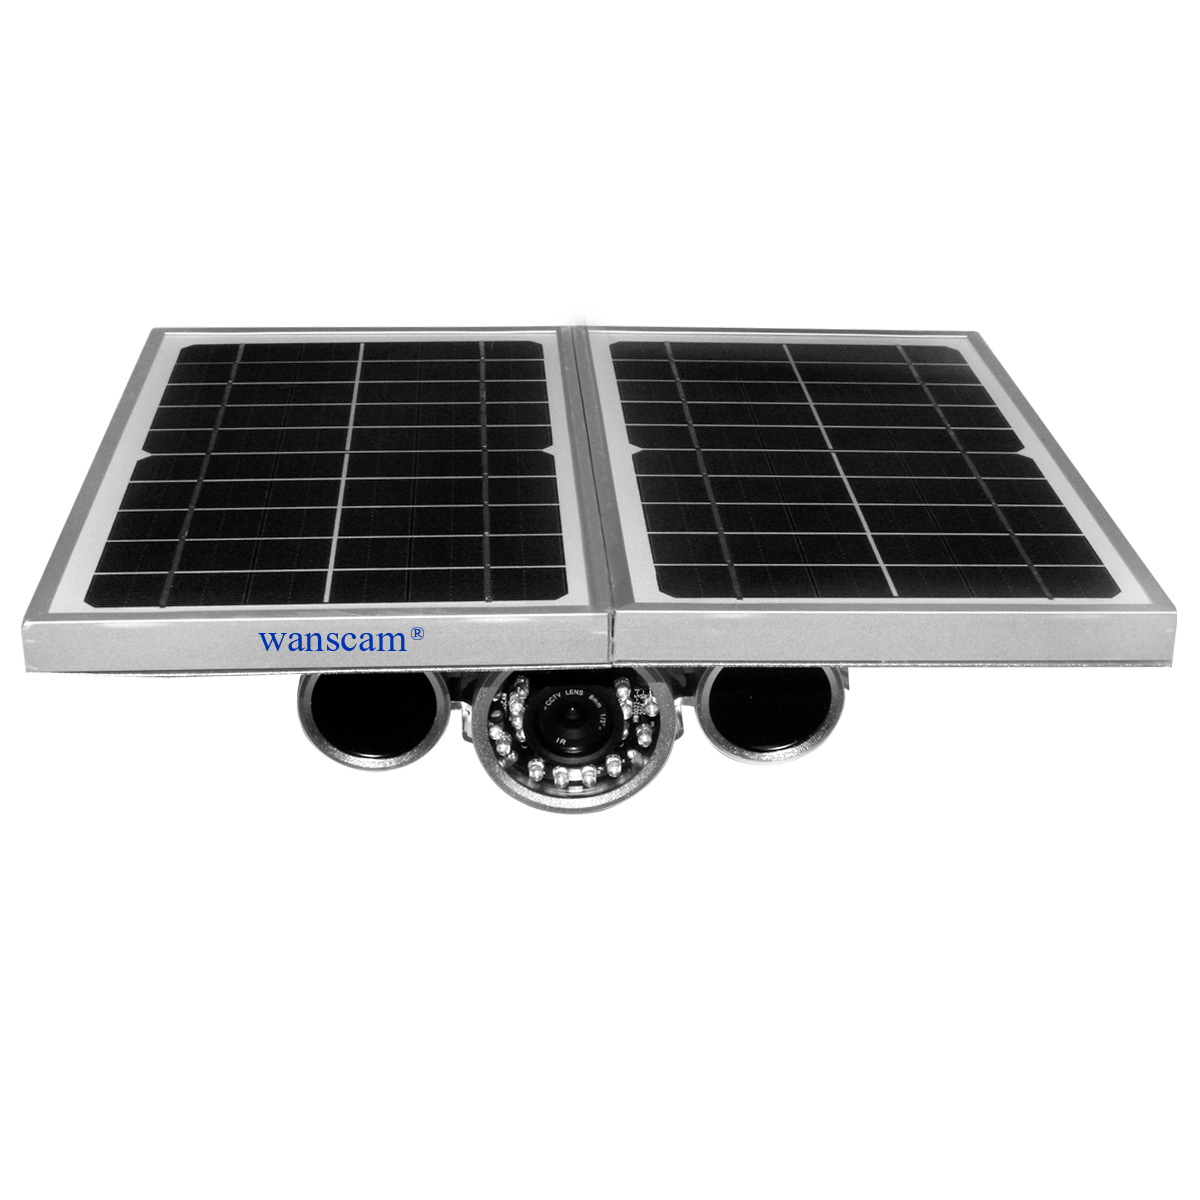 Wanscam HW0029 Solar Power Bullet IP Camera Built-in SD Card Support NVR